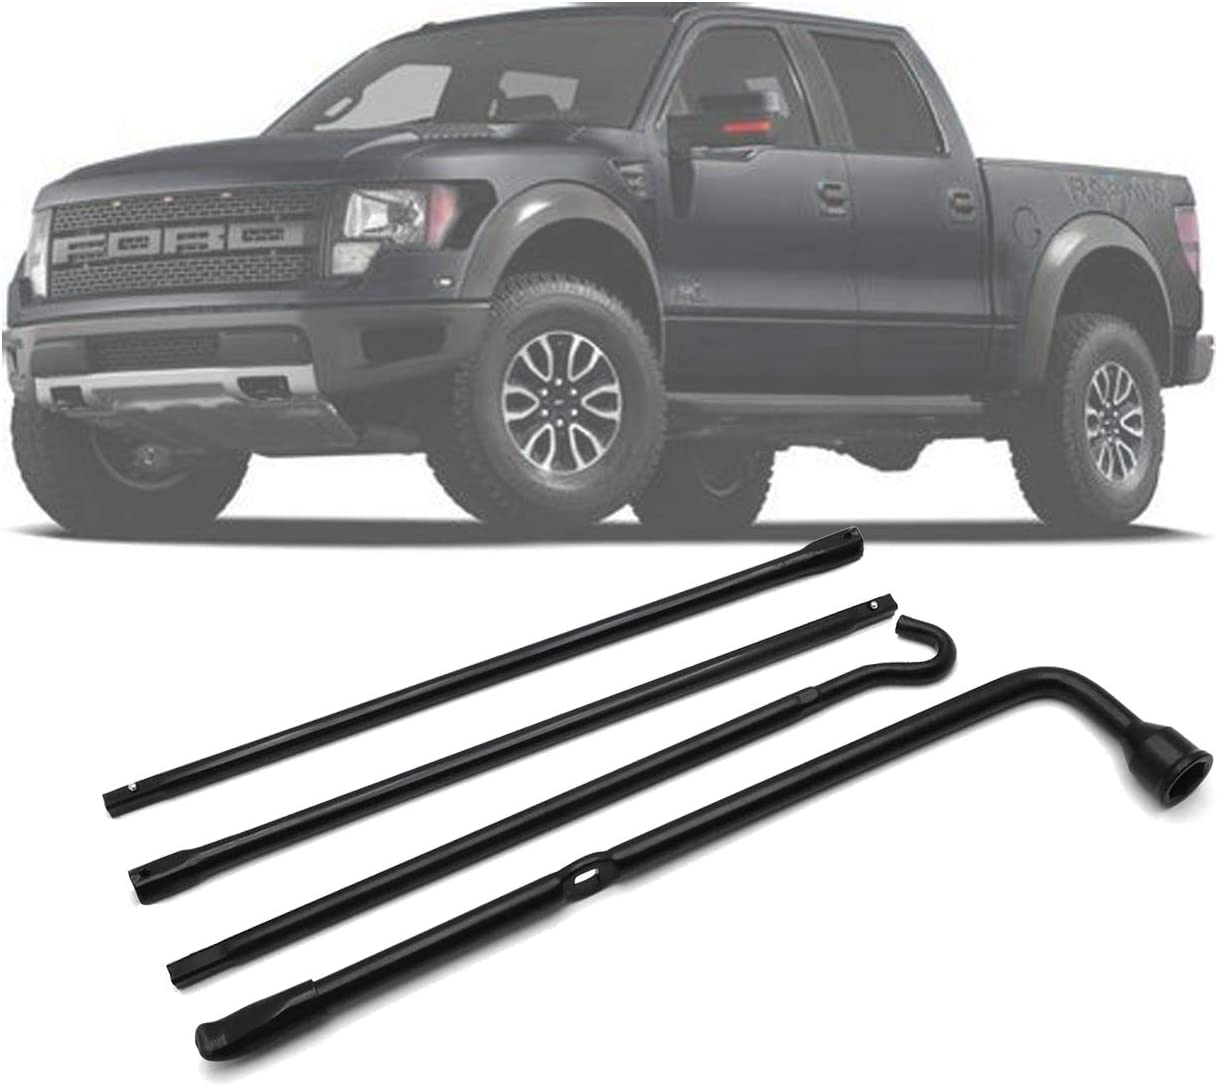 HTTMT- Vehicle F-150 04-14 Spare Tire Tool Lug Wrench Extension